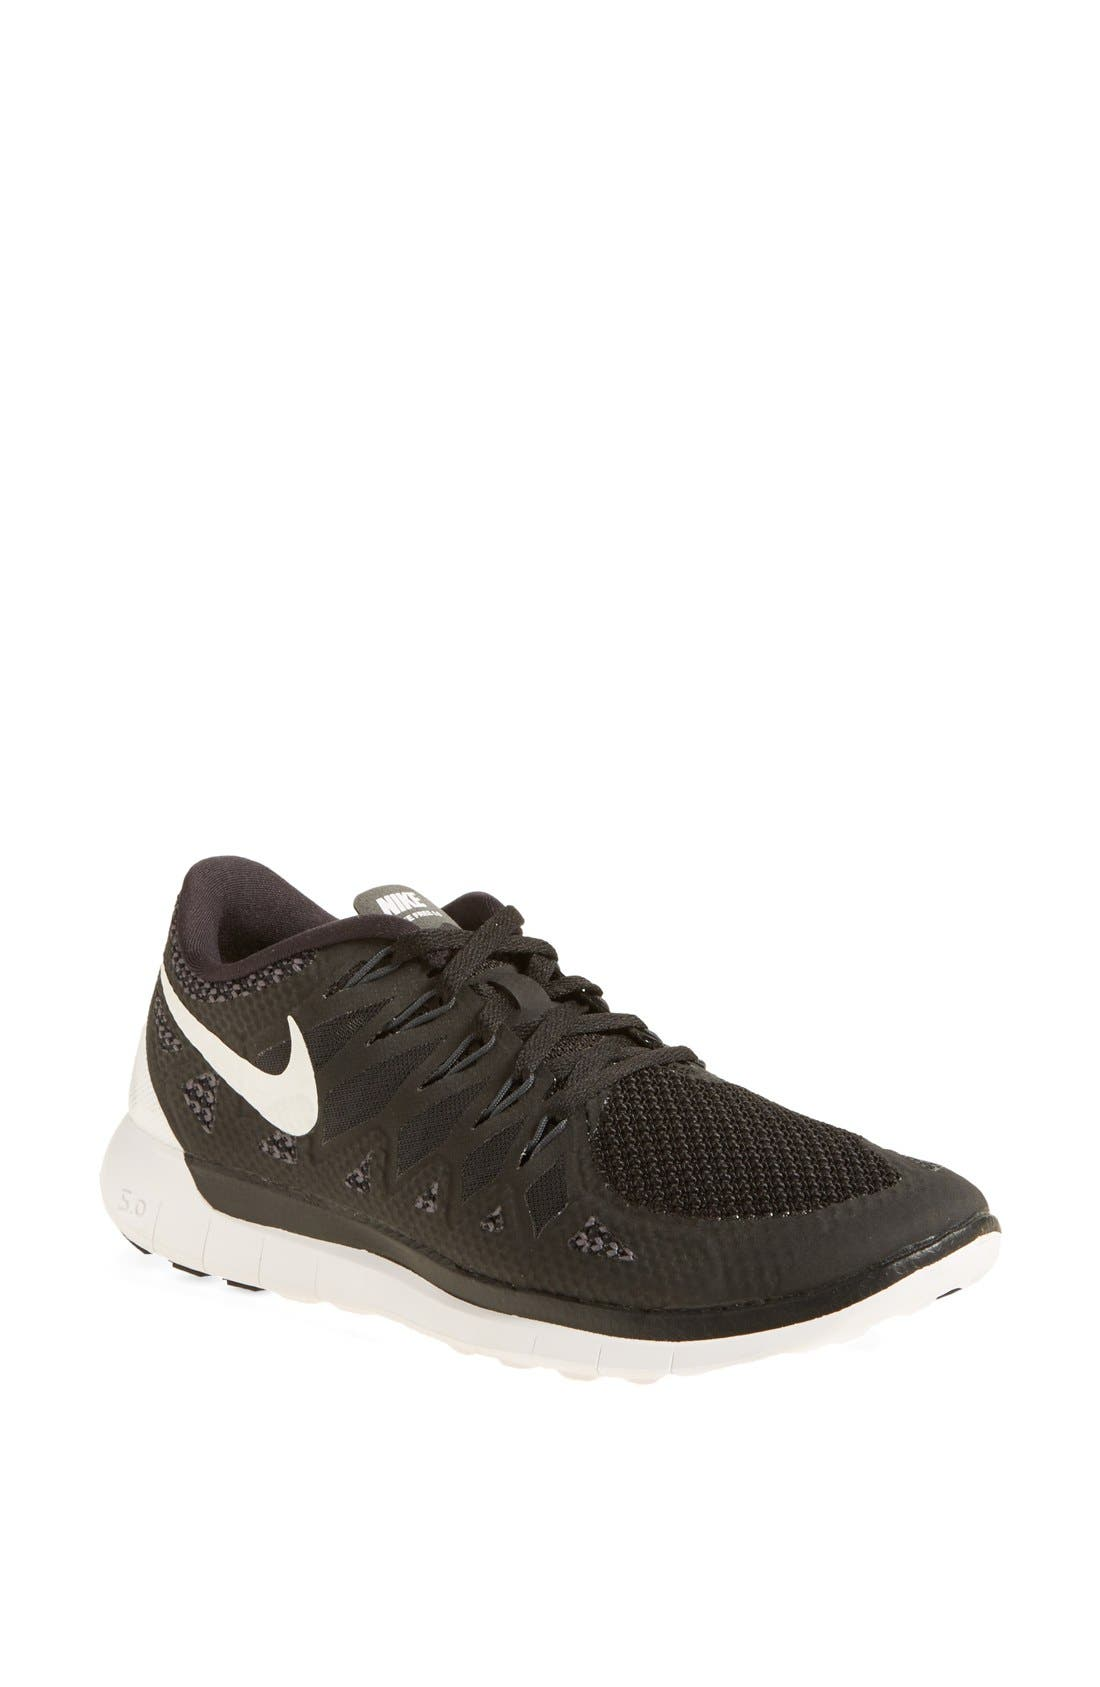 'Free 5.0 14' Running Shoe,                             Main thumbnail 1, color,                             001